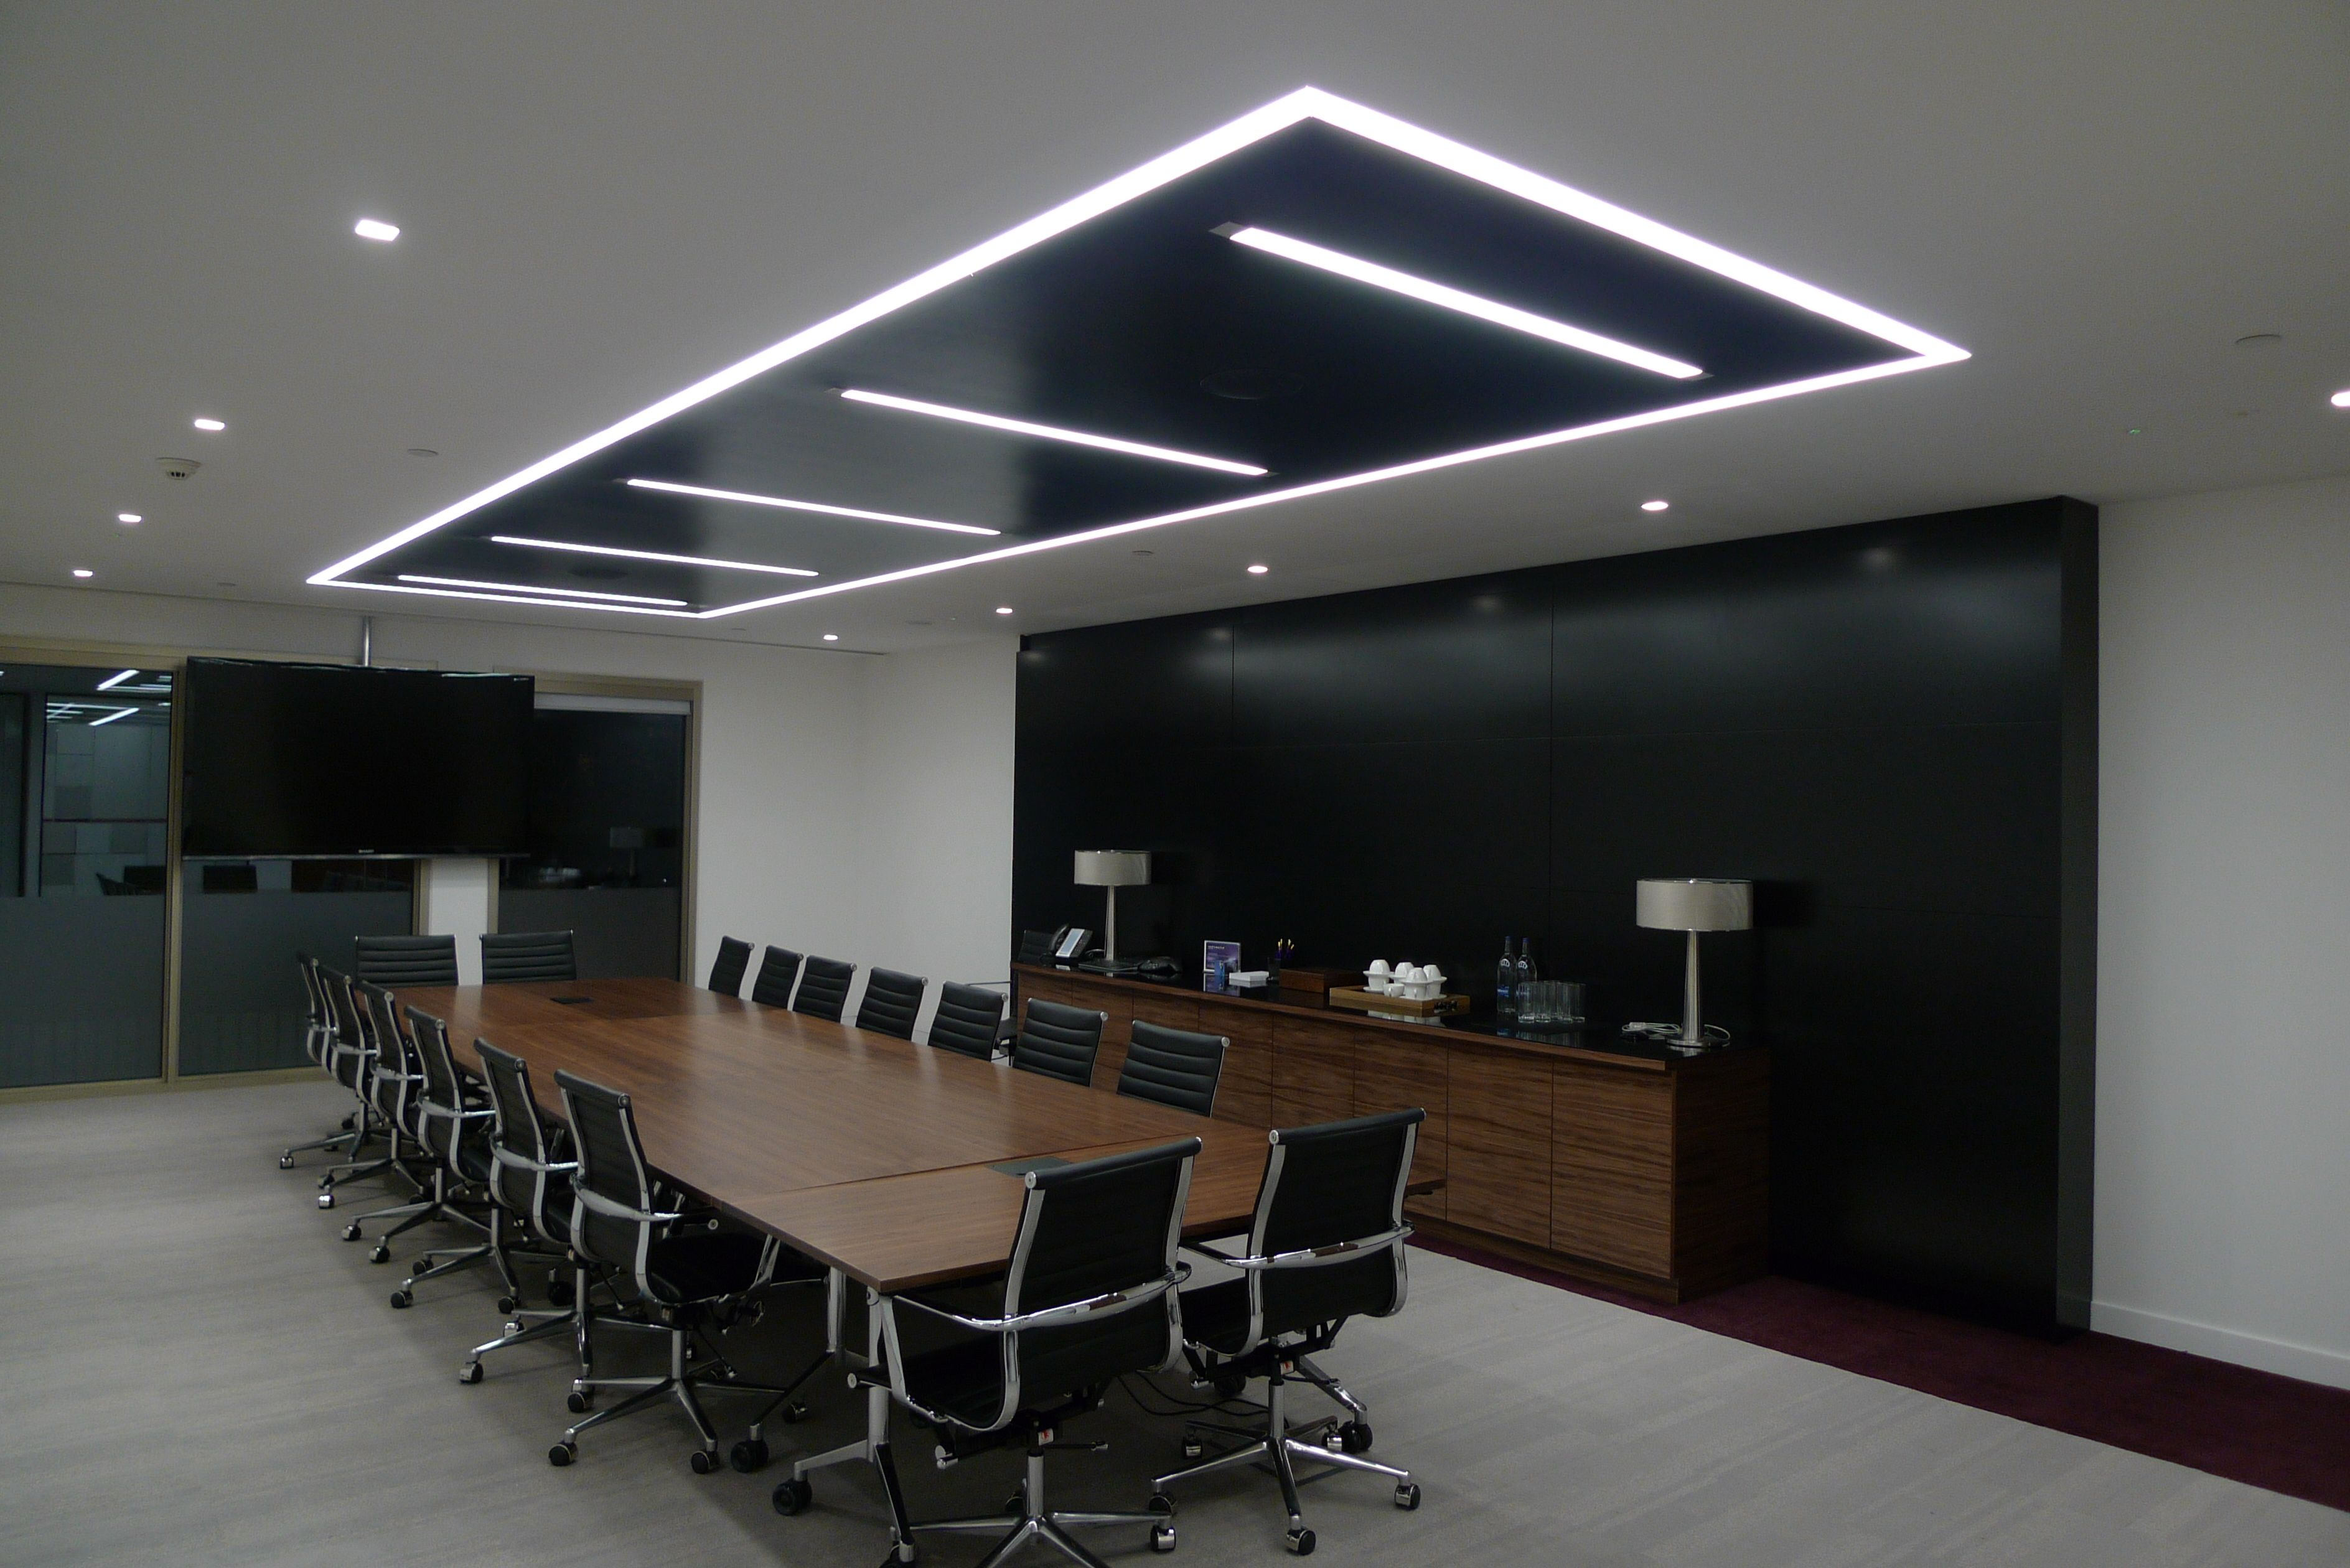 Image result for conference room ceiling lightingceilings